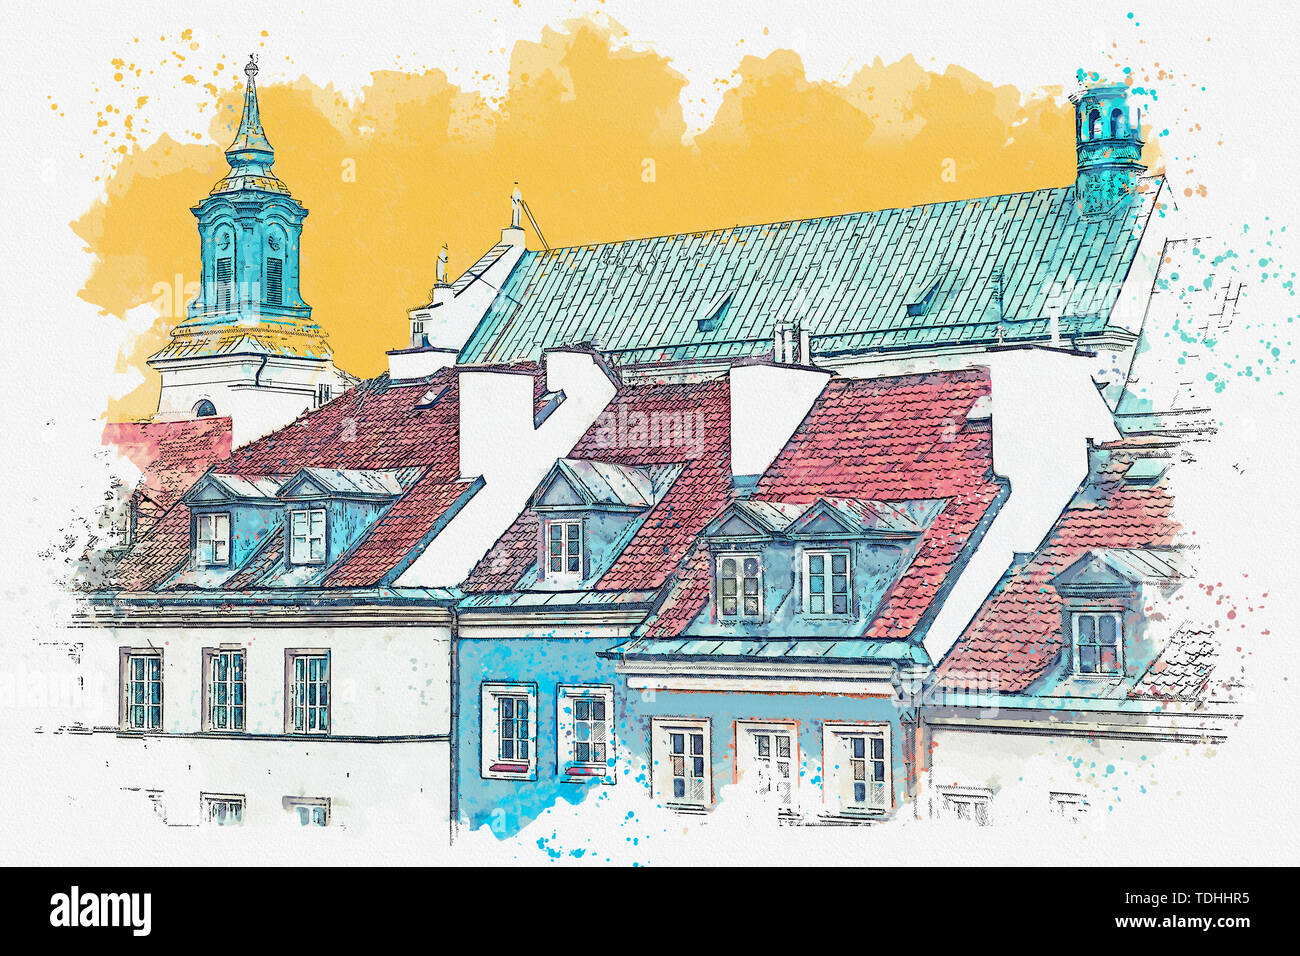 Watercolor sketch or illustration of a beautiful view of European old apartment buildings - Stock Image